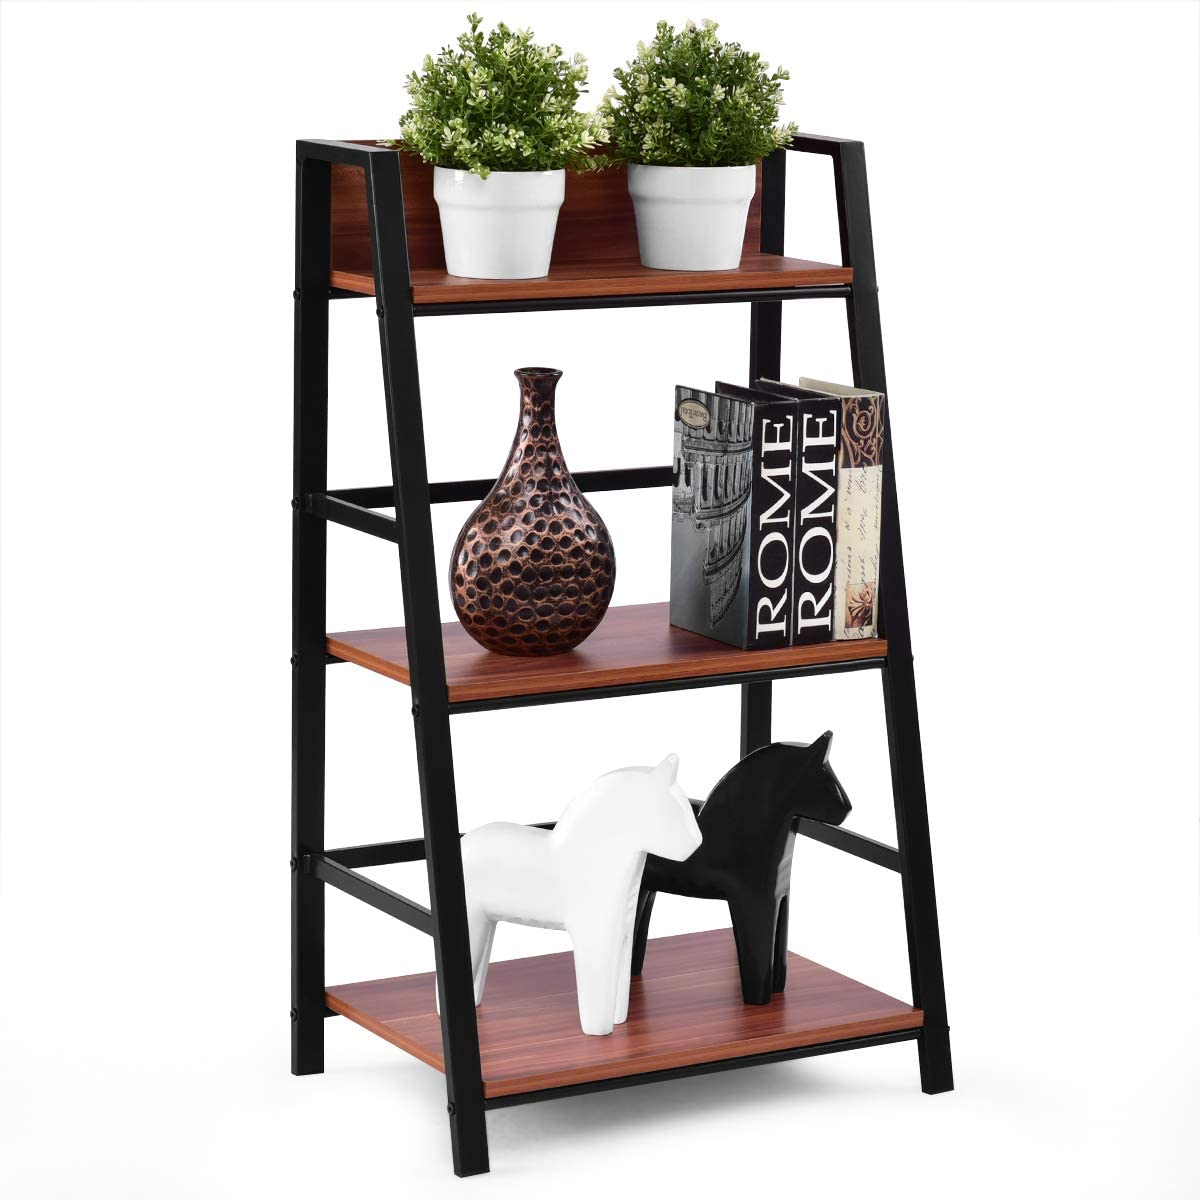 Tangkula 3-Tier Ladder Shelf Home Office Bookshelf Plant Display Stand Storage Shelves Multipurpose Corner Shelf Bookcase